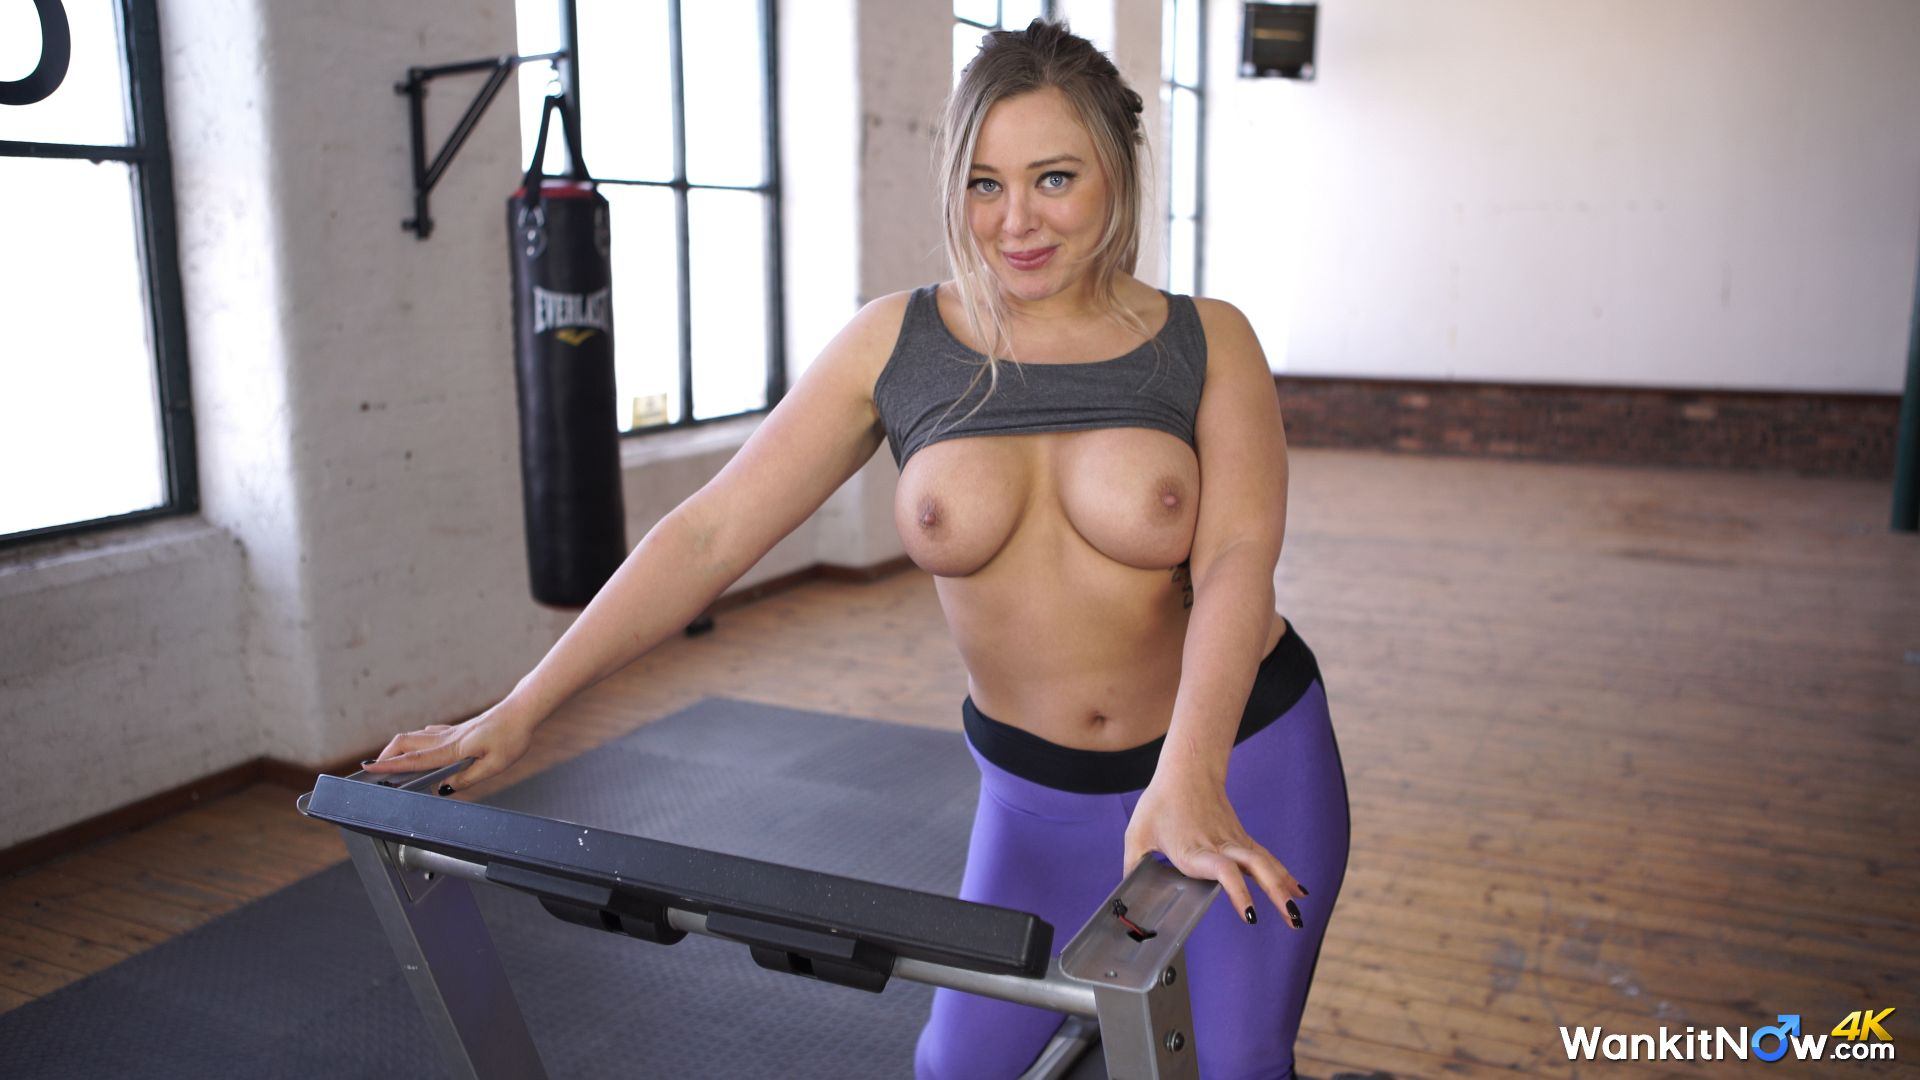 Great tits bouncing as i fuck myself august 2018 - 5 6